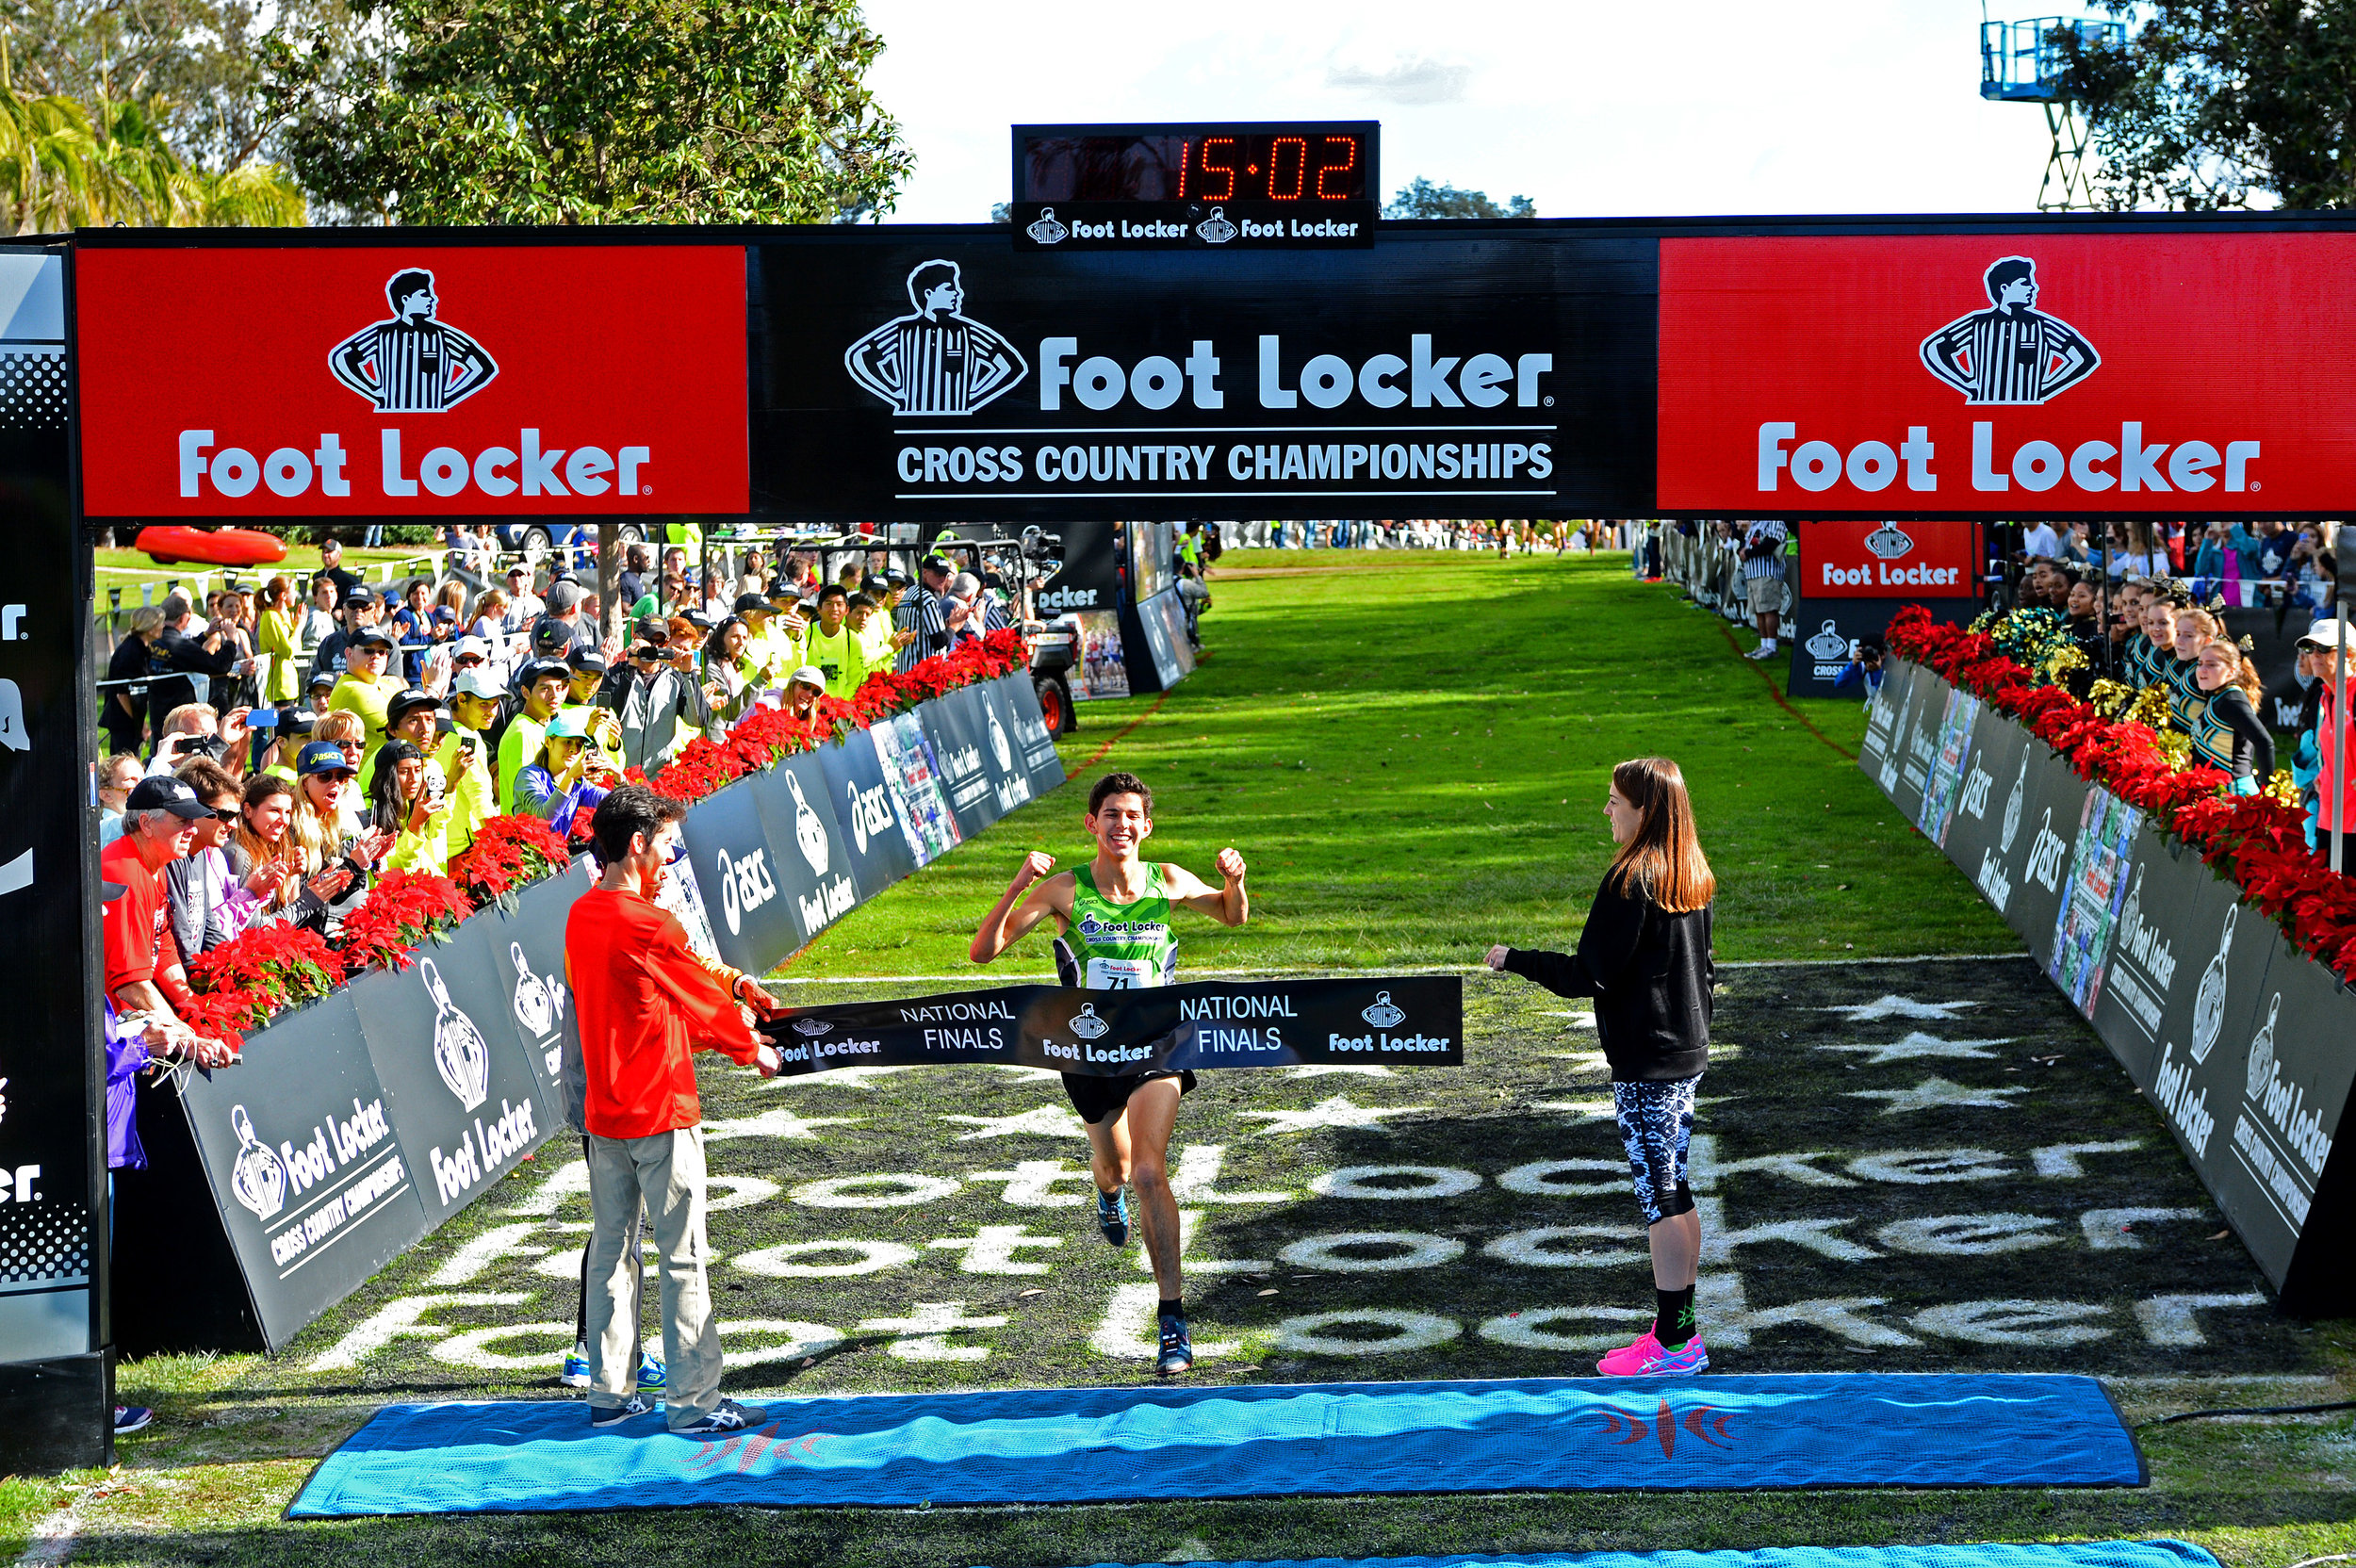 FootLockerCrossCountry_APCG1.jpg